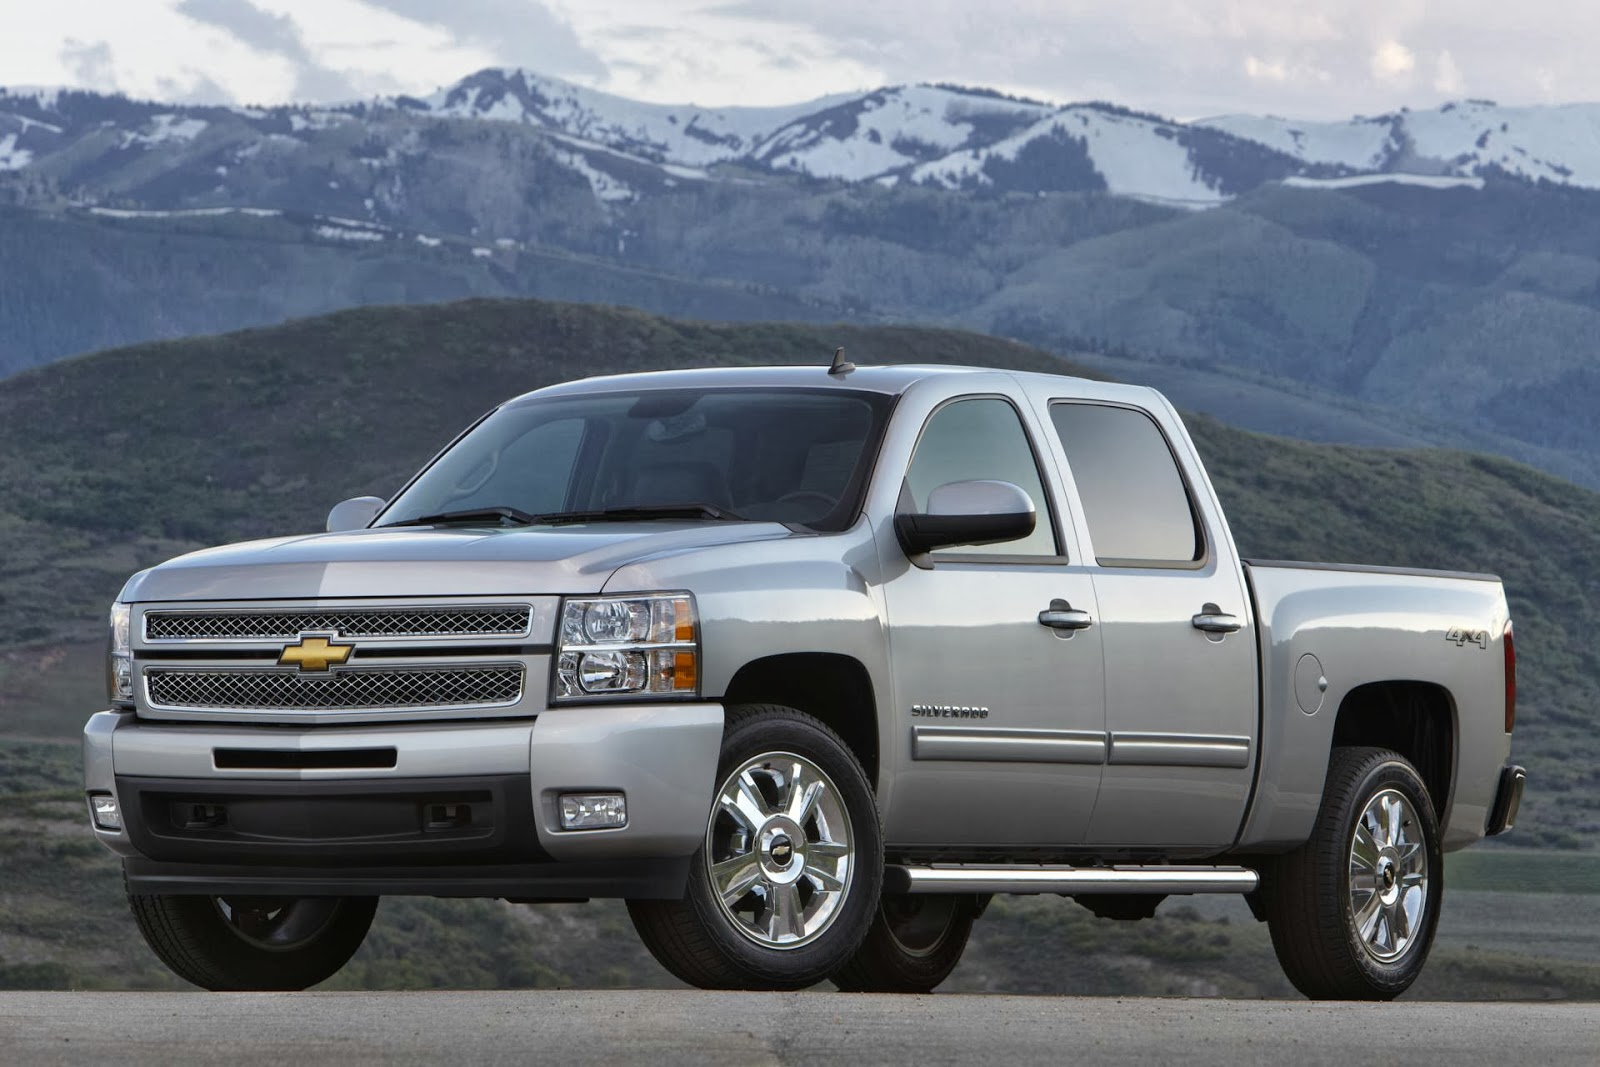 2013 chevy silverado review chevy silverado. Cars Review. Best American Auto & Cars Review